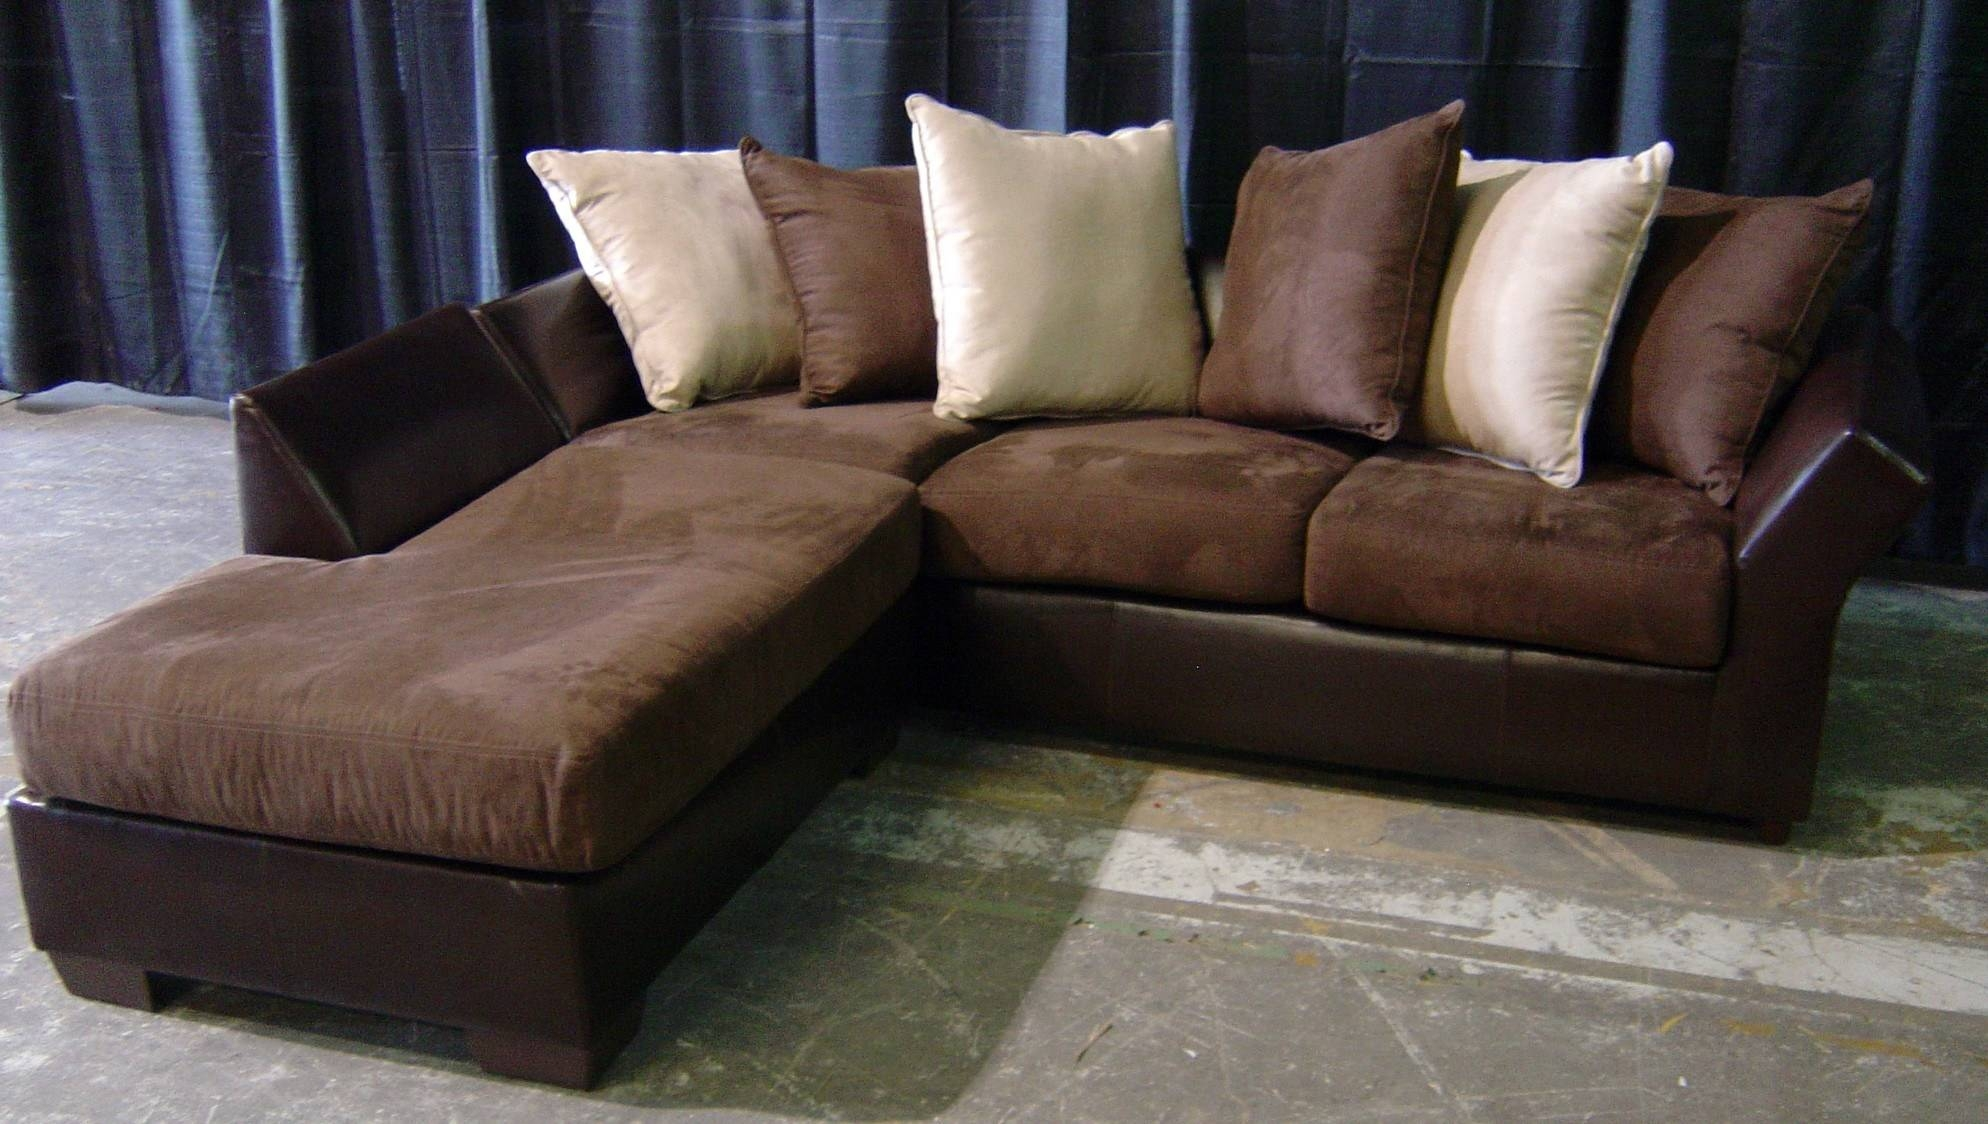 Furniture: Brown Leather Sectional Couchescraigslist Missoula with regard to Craigslist Leather Sofa (Image 12 of 30)